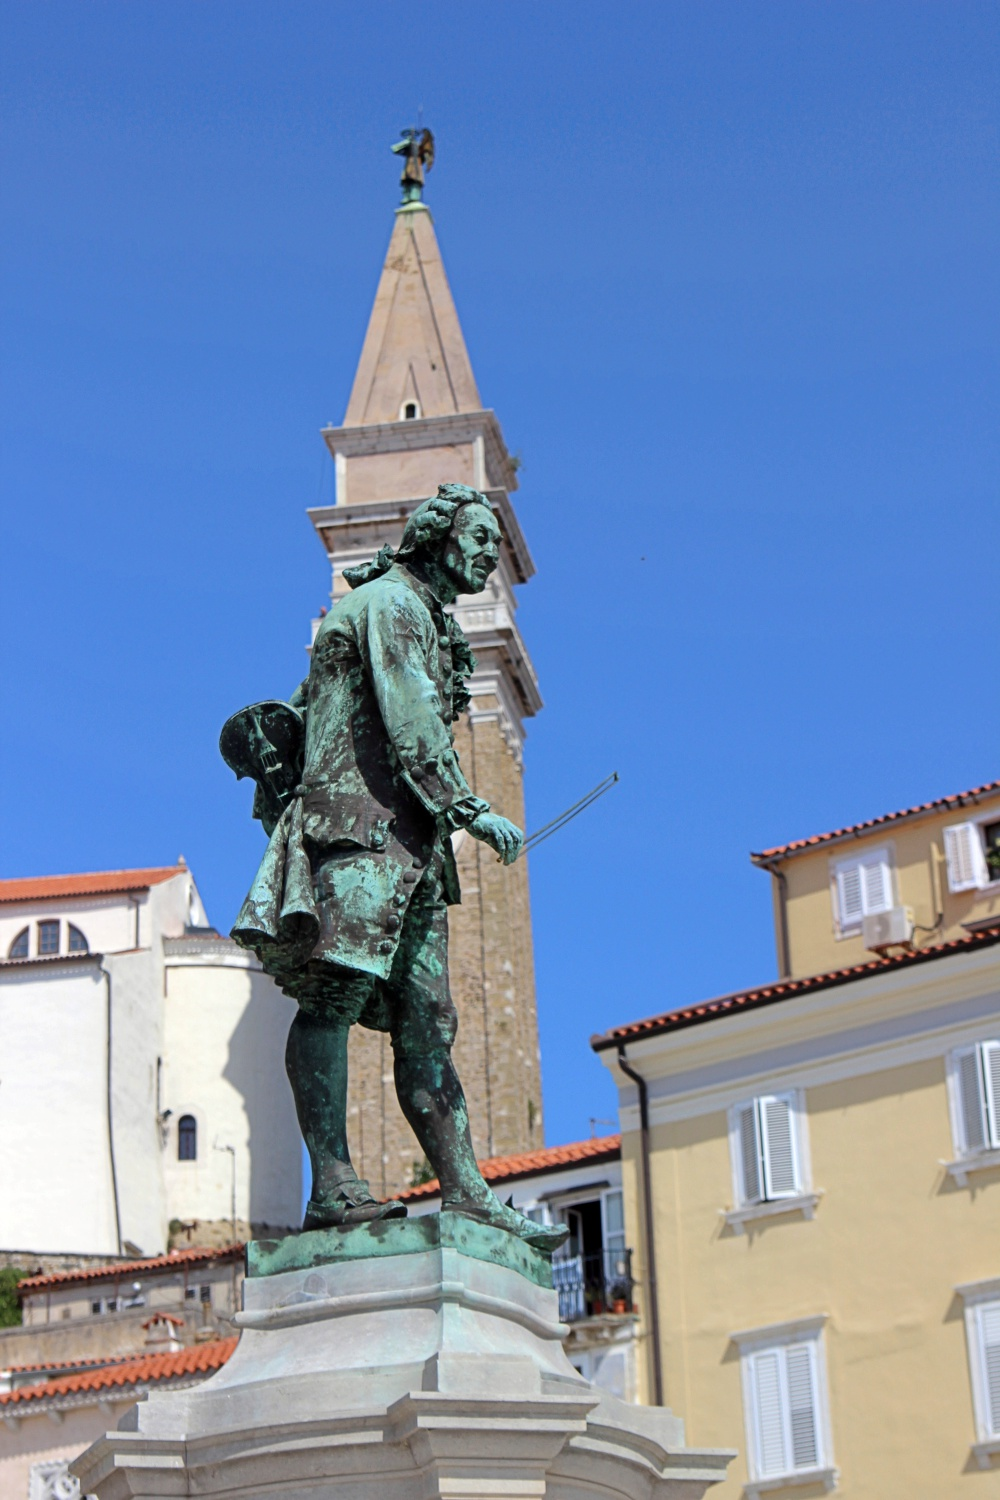 Statue von Tartini in Piran